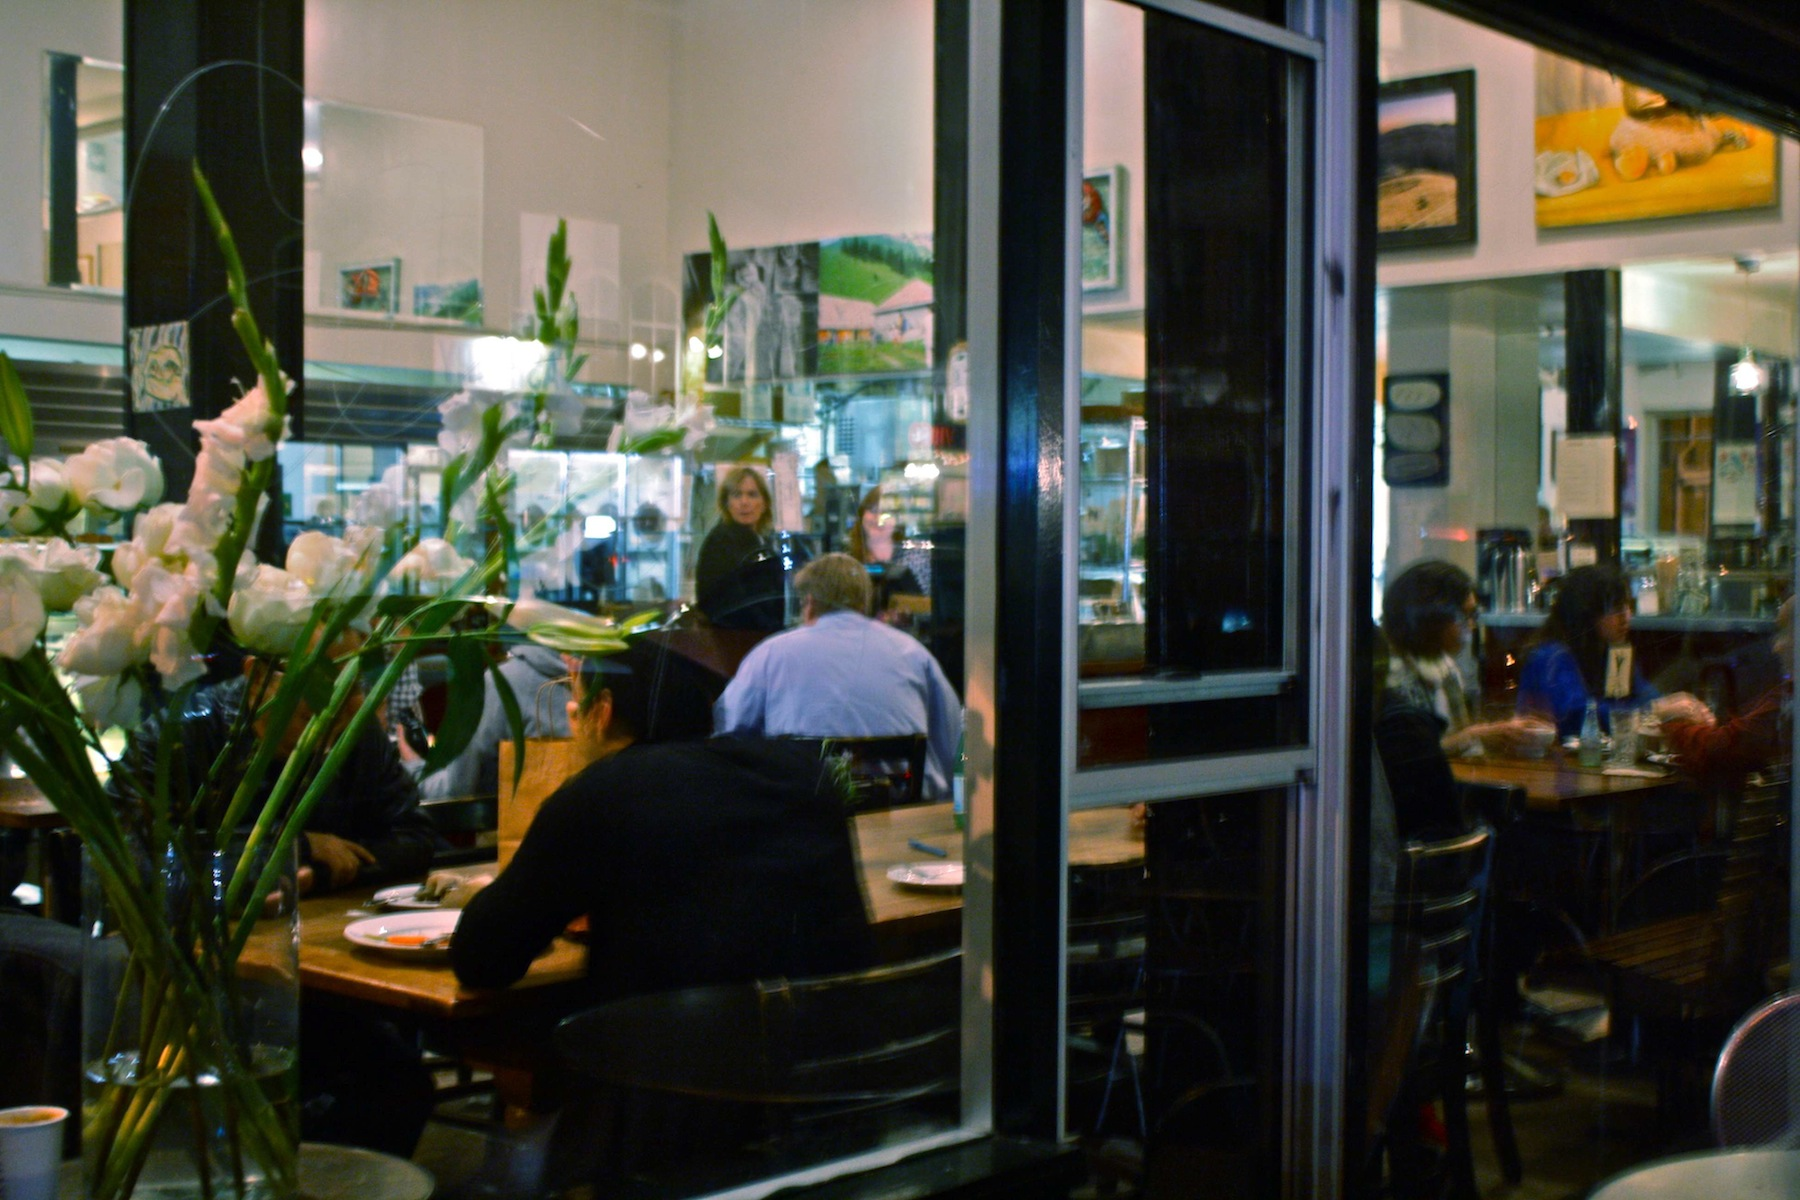 Looking through the picture windows of Tartine, a place where food is shared. File photo.